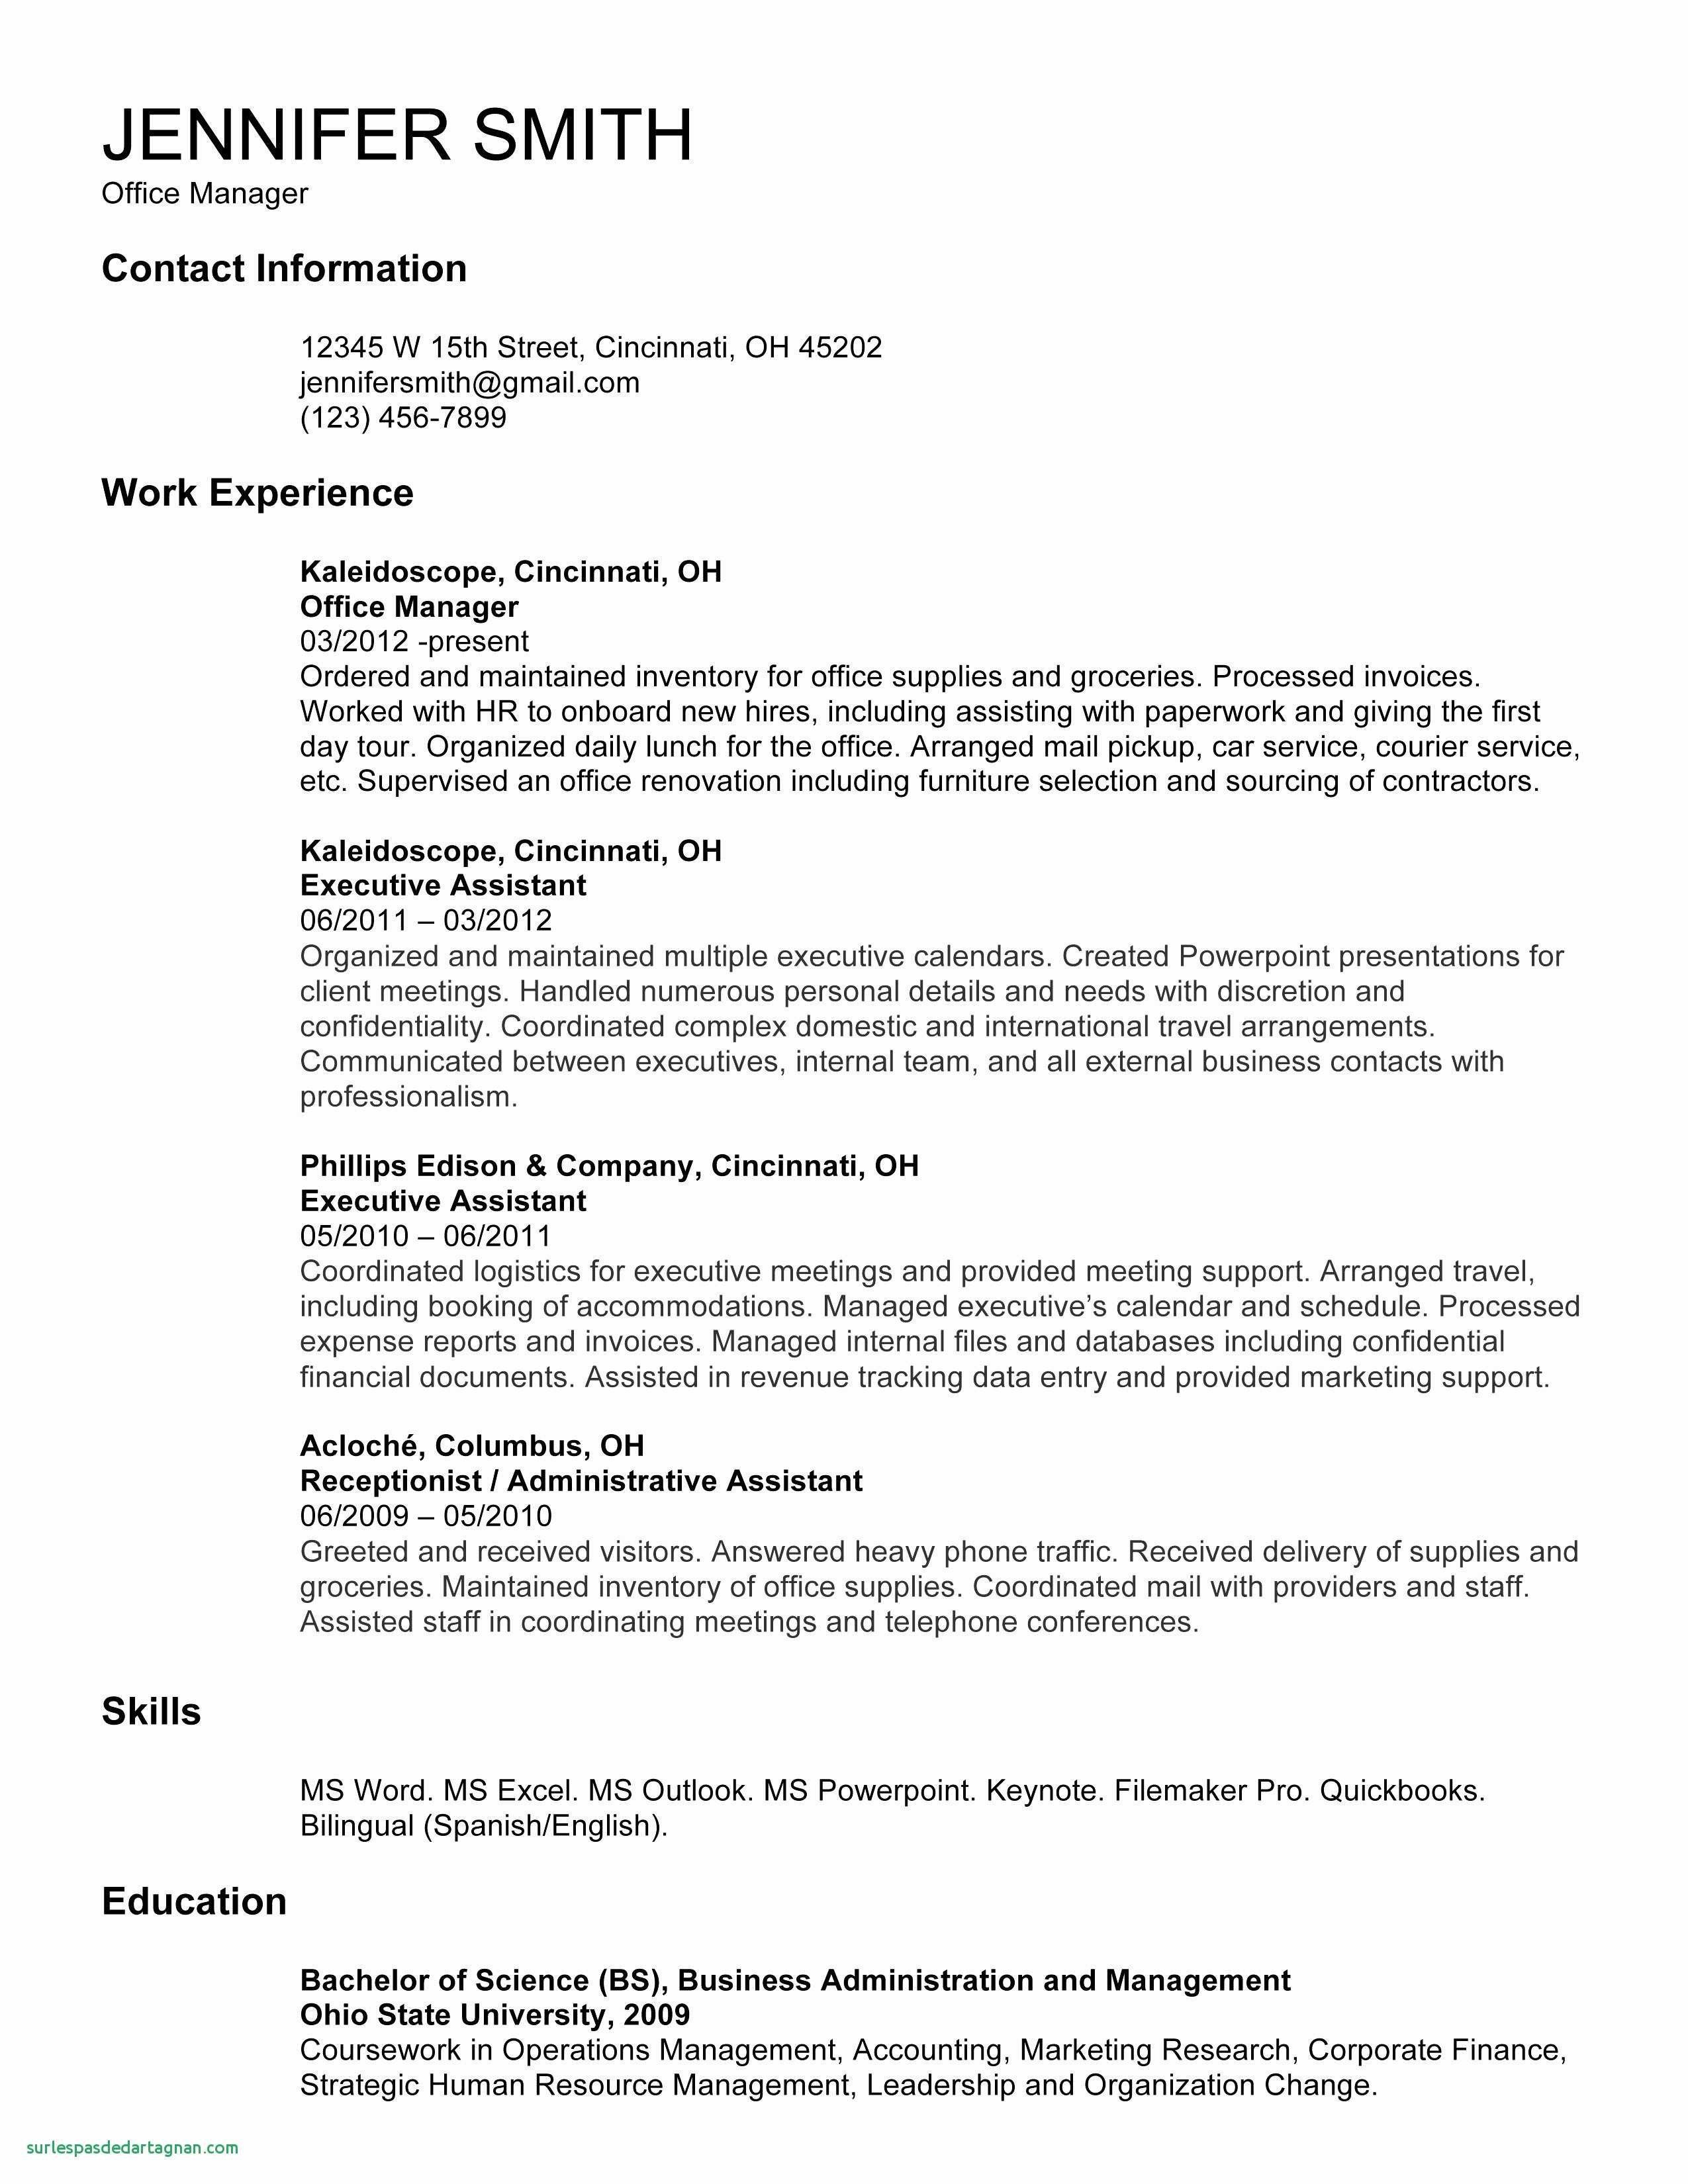 Resume Templates Downloads - Resume Template Download Free Unique ¢Ë†Å¡ Resume Template Download